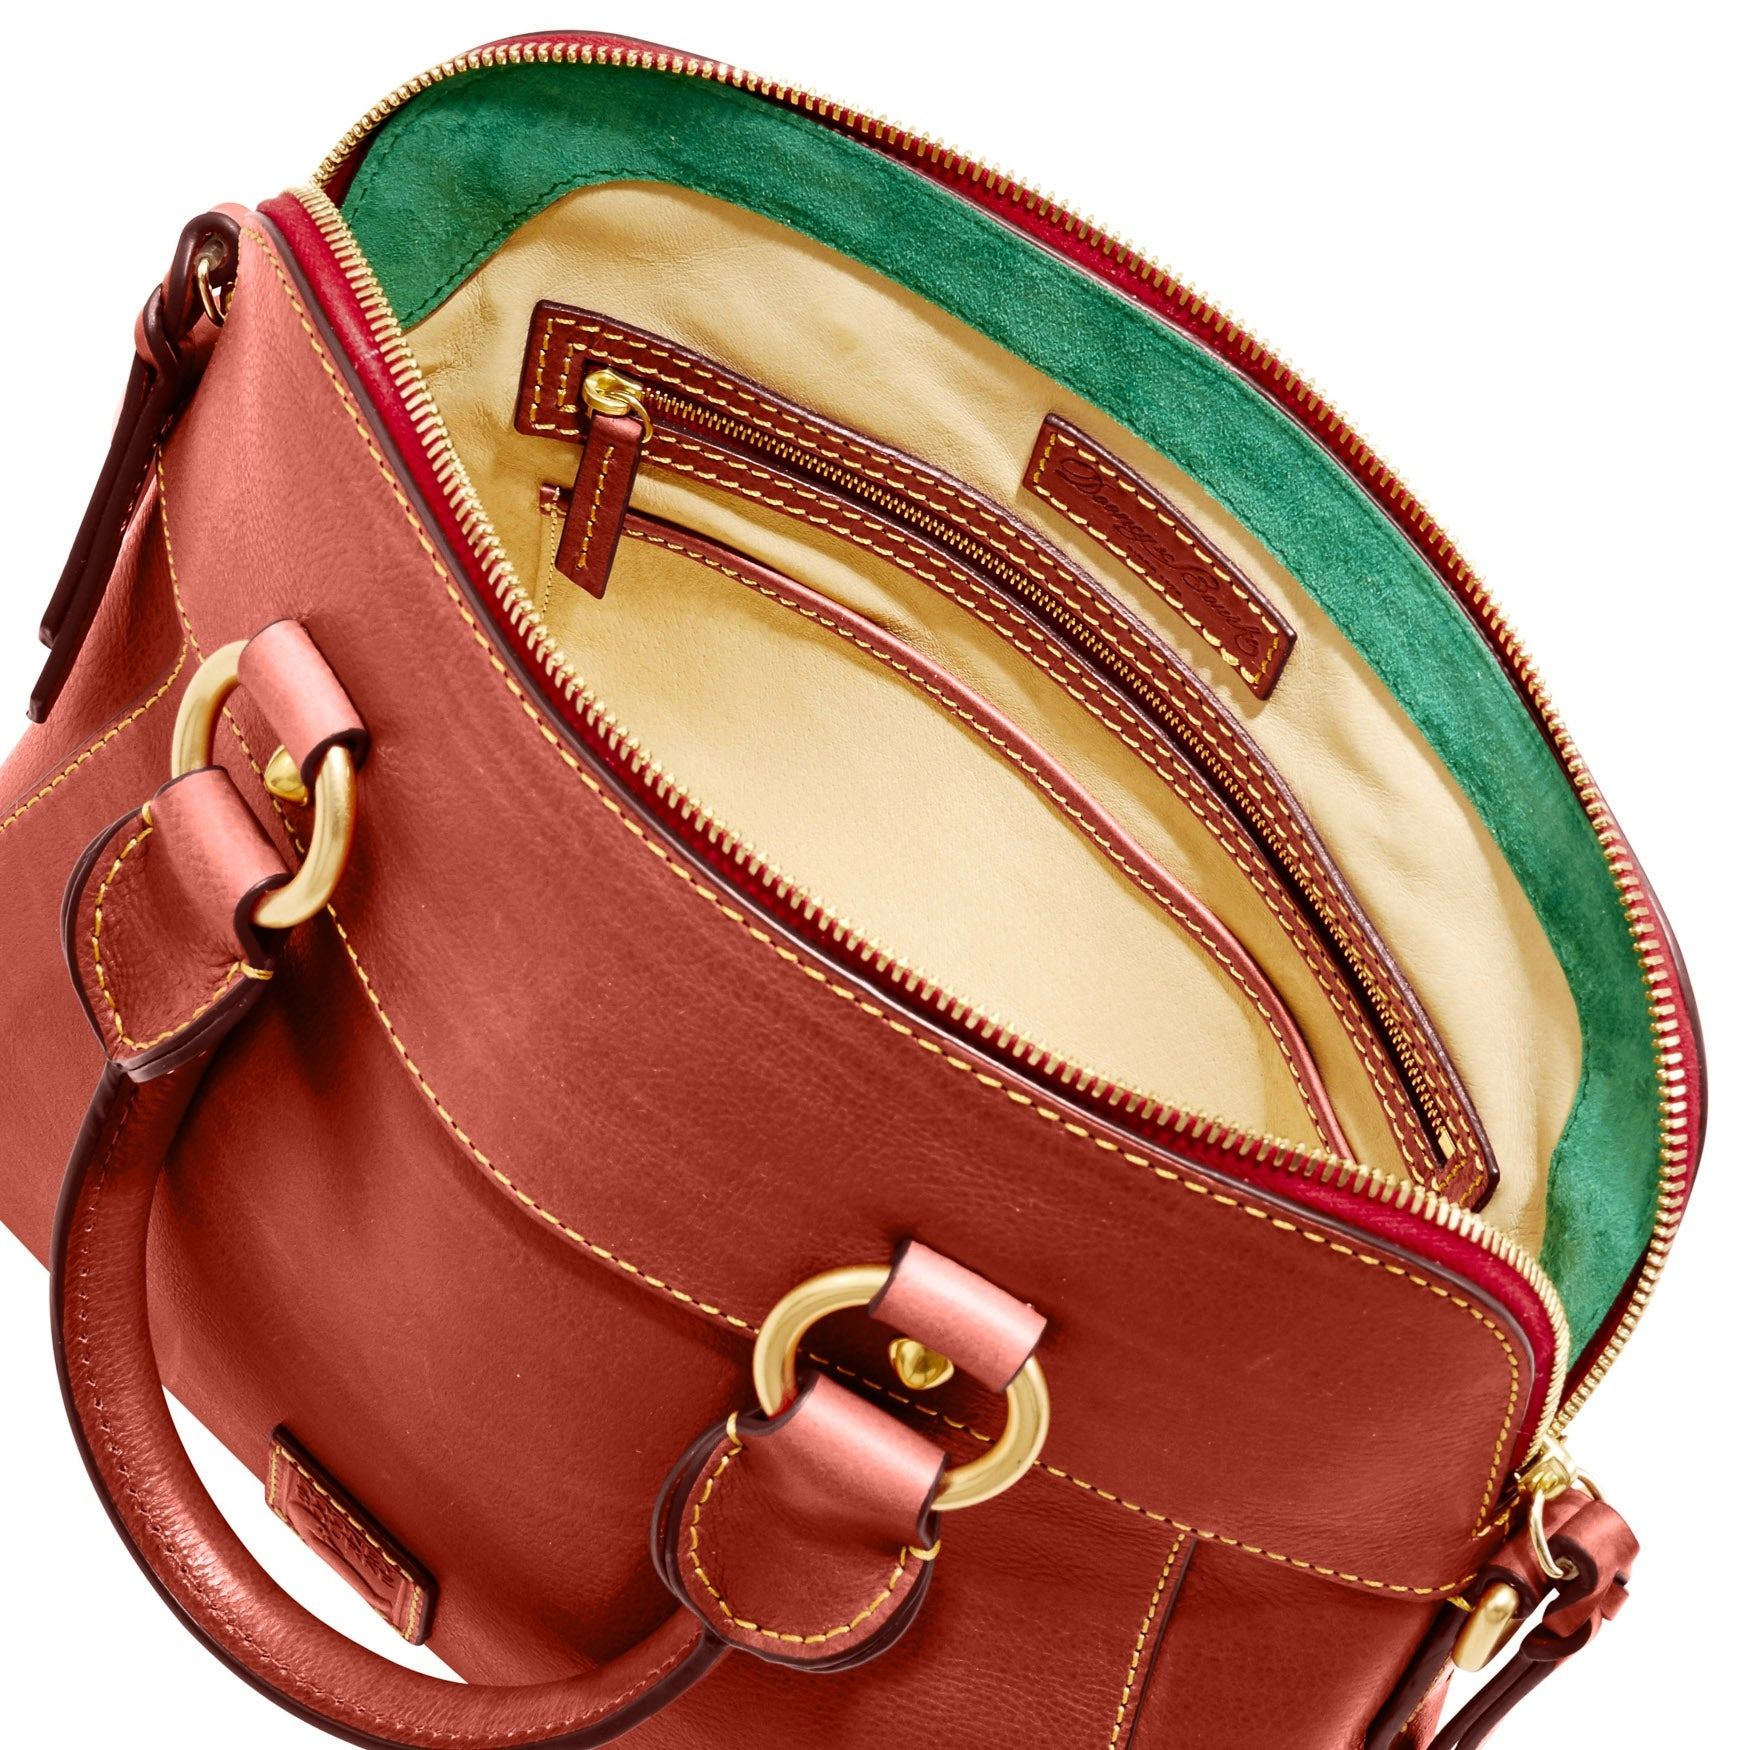 c1e932725 Shop Dooney & Bourke Florentine Cameron Satchel (Introduced by Dooney &  Bourke at $298 in Aug 2017) - Free Shipping Today - Overstock - 22813858